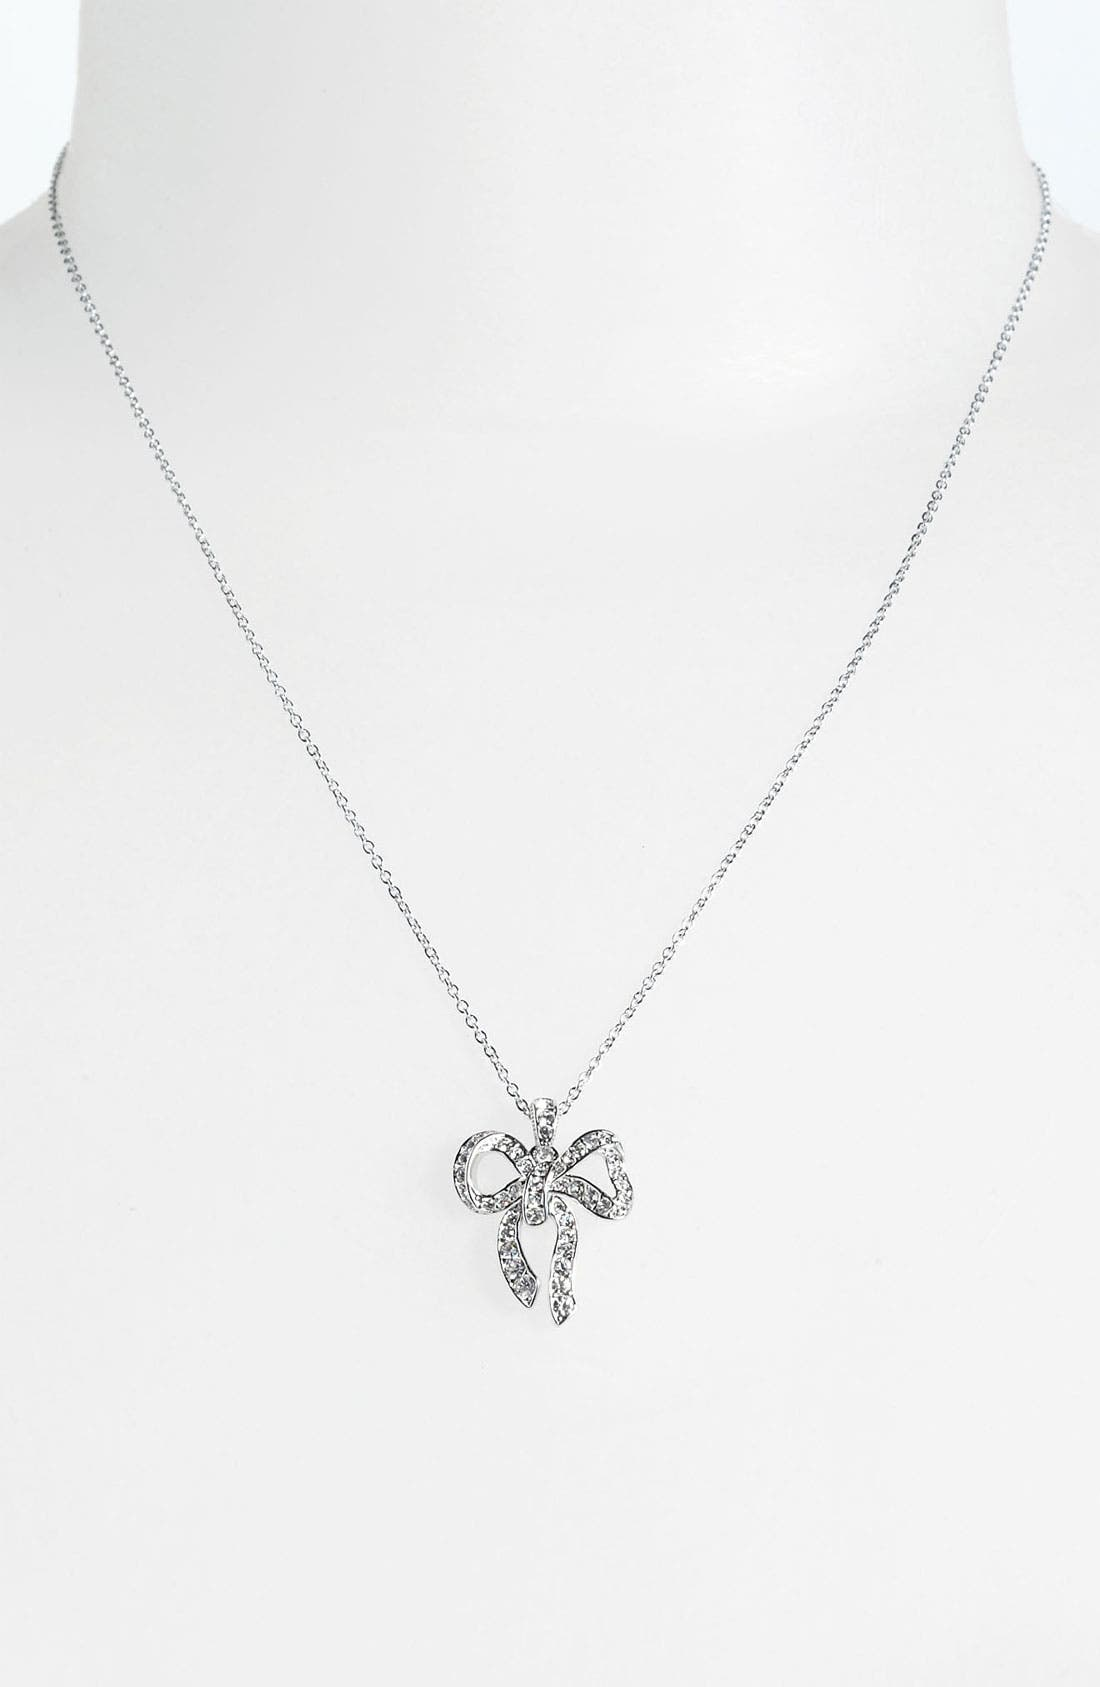 Main Image - Nadri Boxed Bow Pendant Necklace (Nordstrom Exclusive)